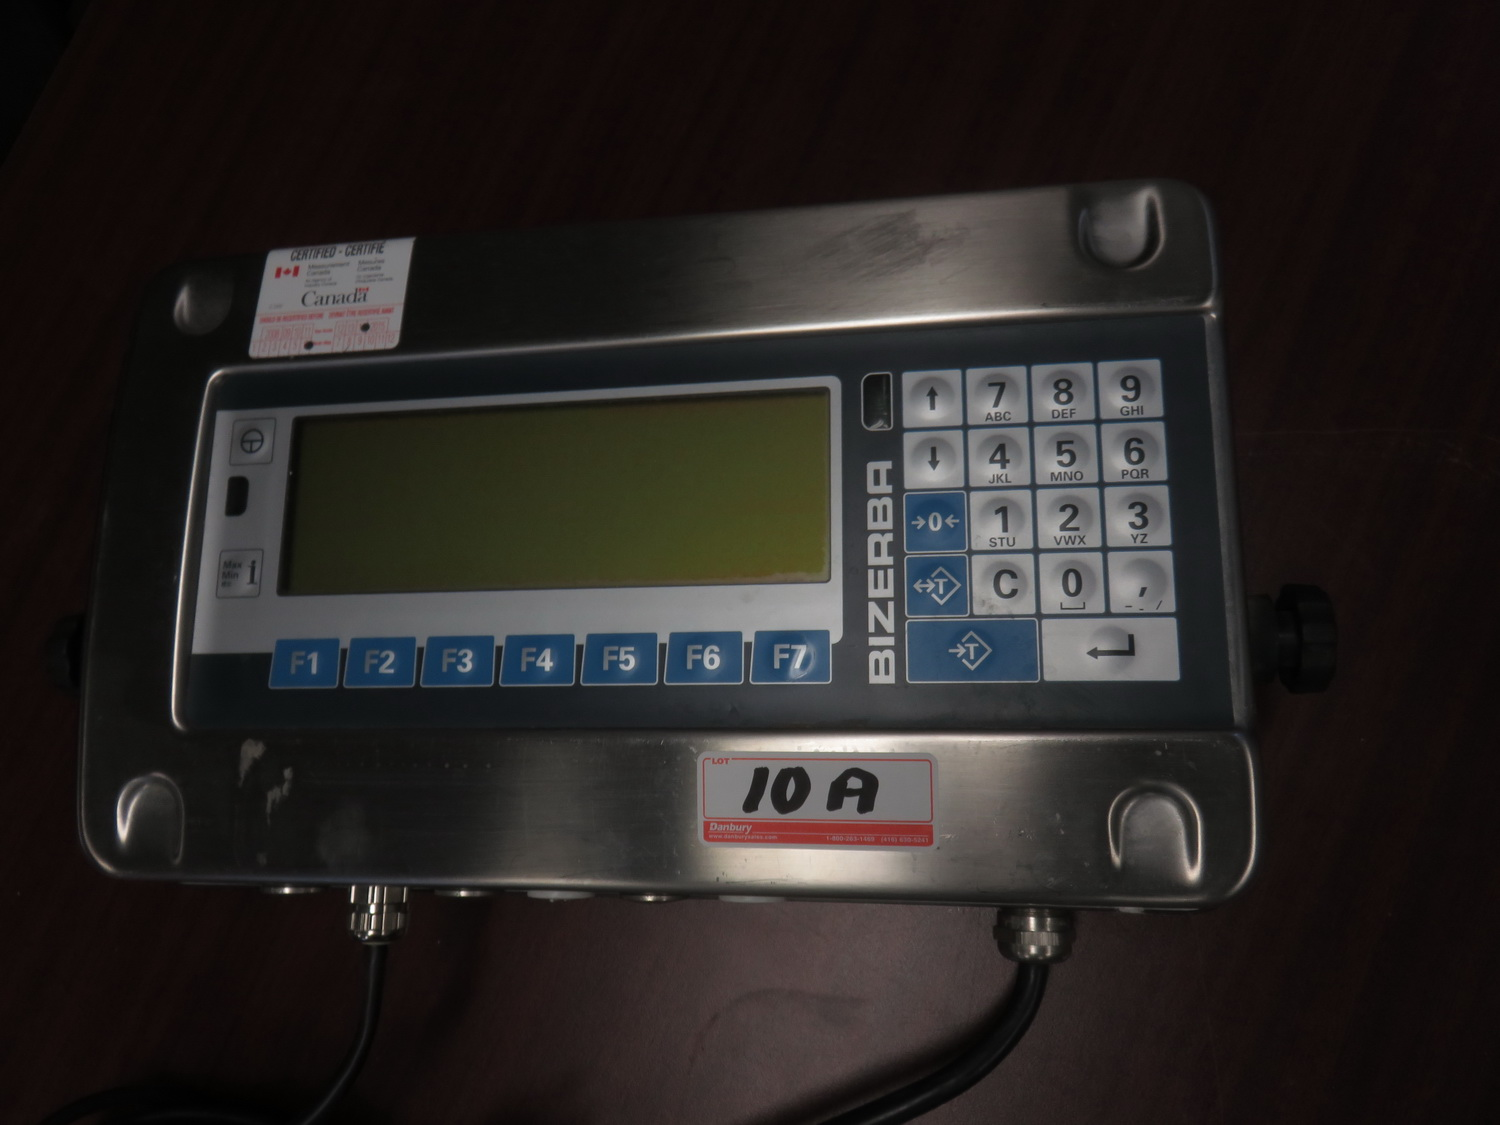 BIZERBA ST-60KG CAP DIGITAL SCALE READOUT (DRO ONLY - NO SCALE) - Image 2 of 2